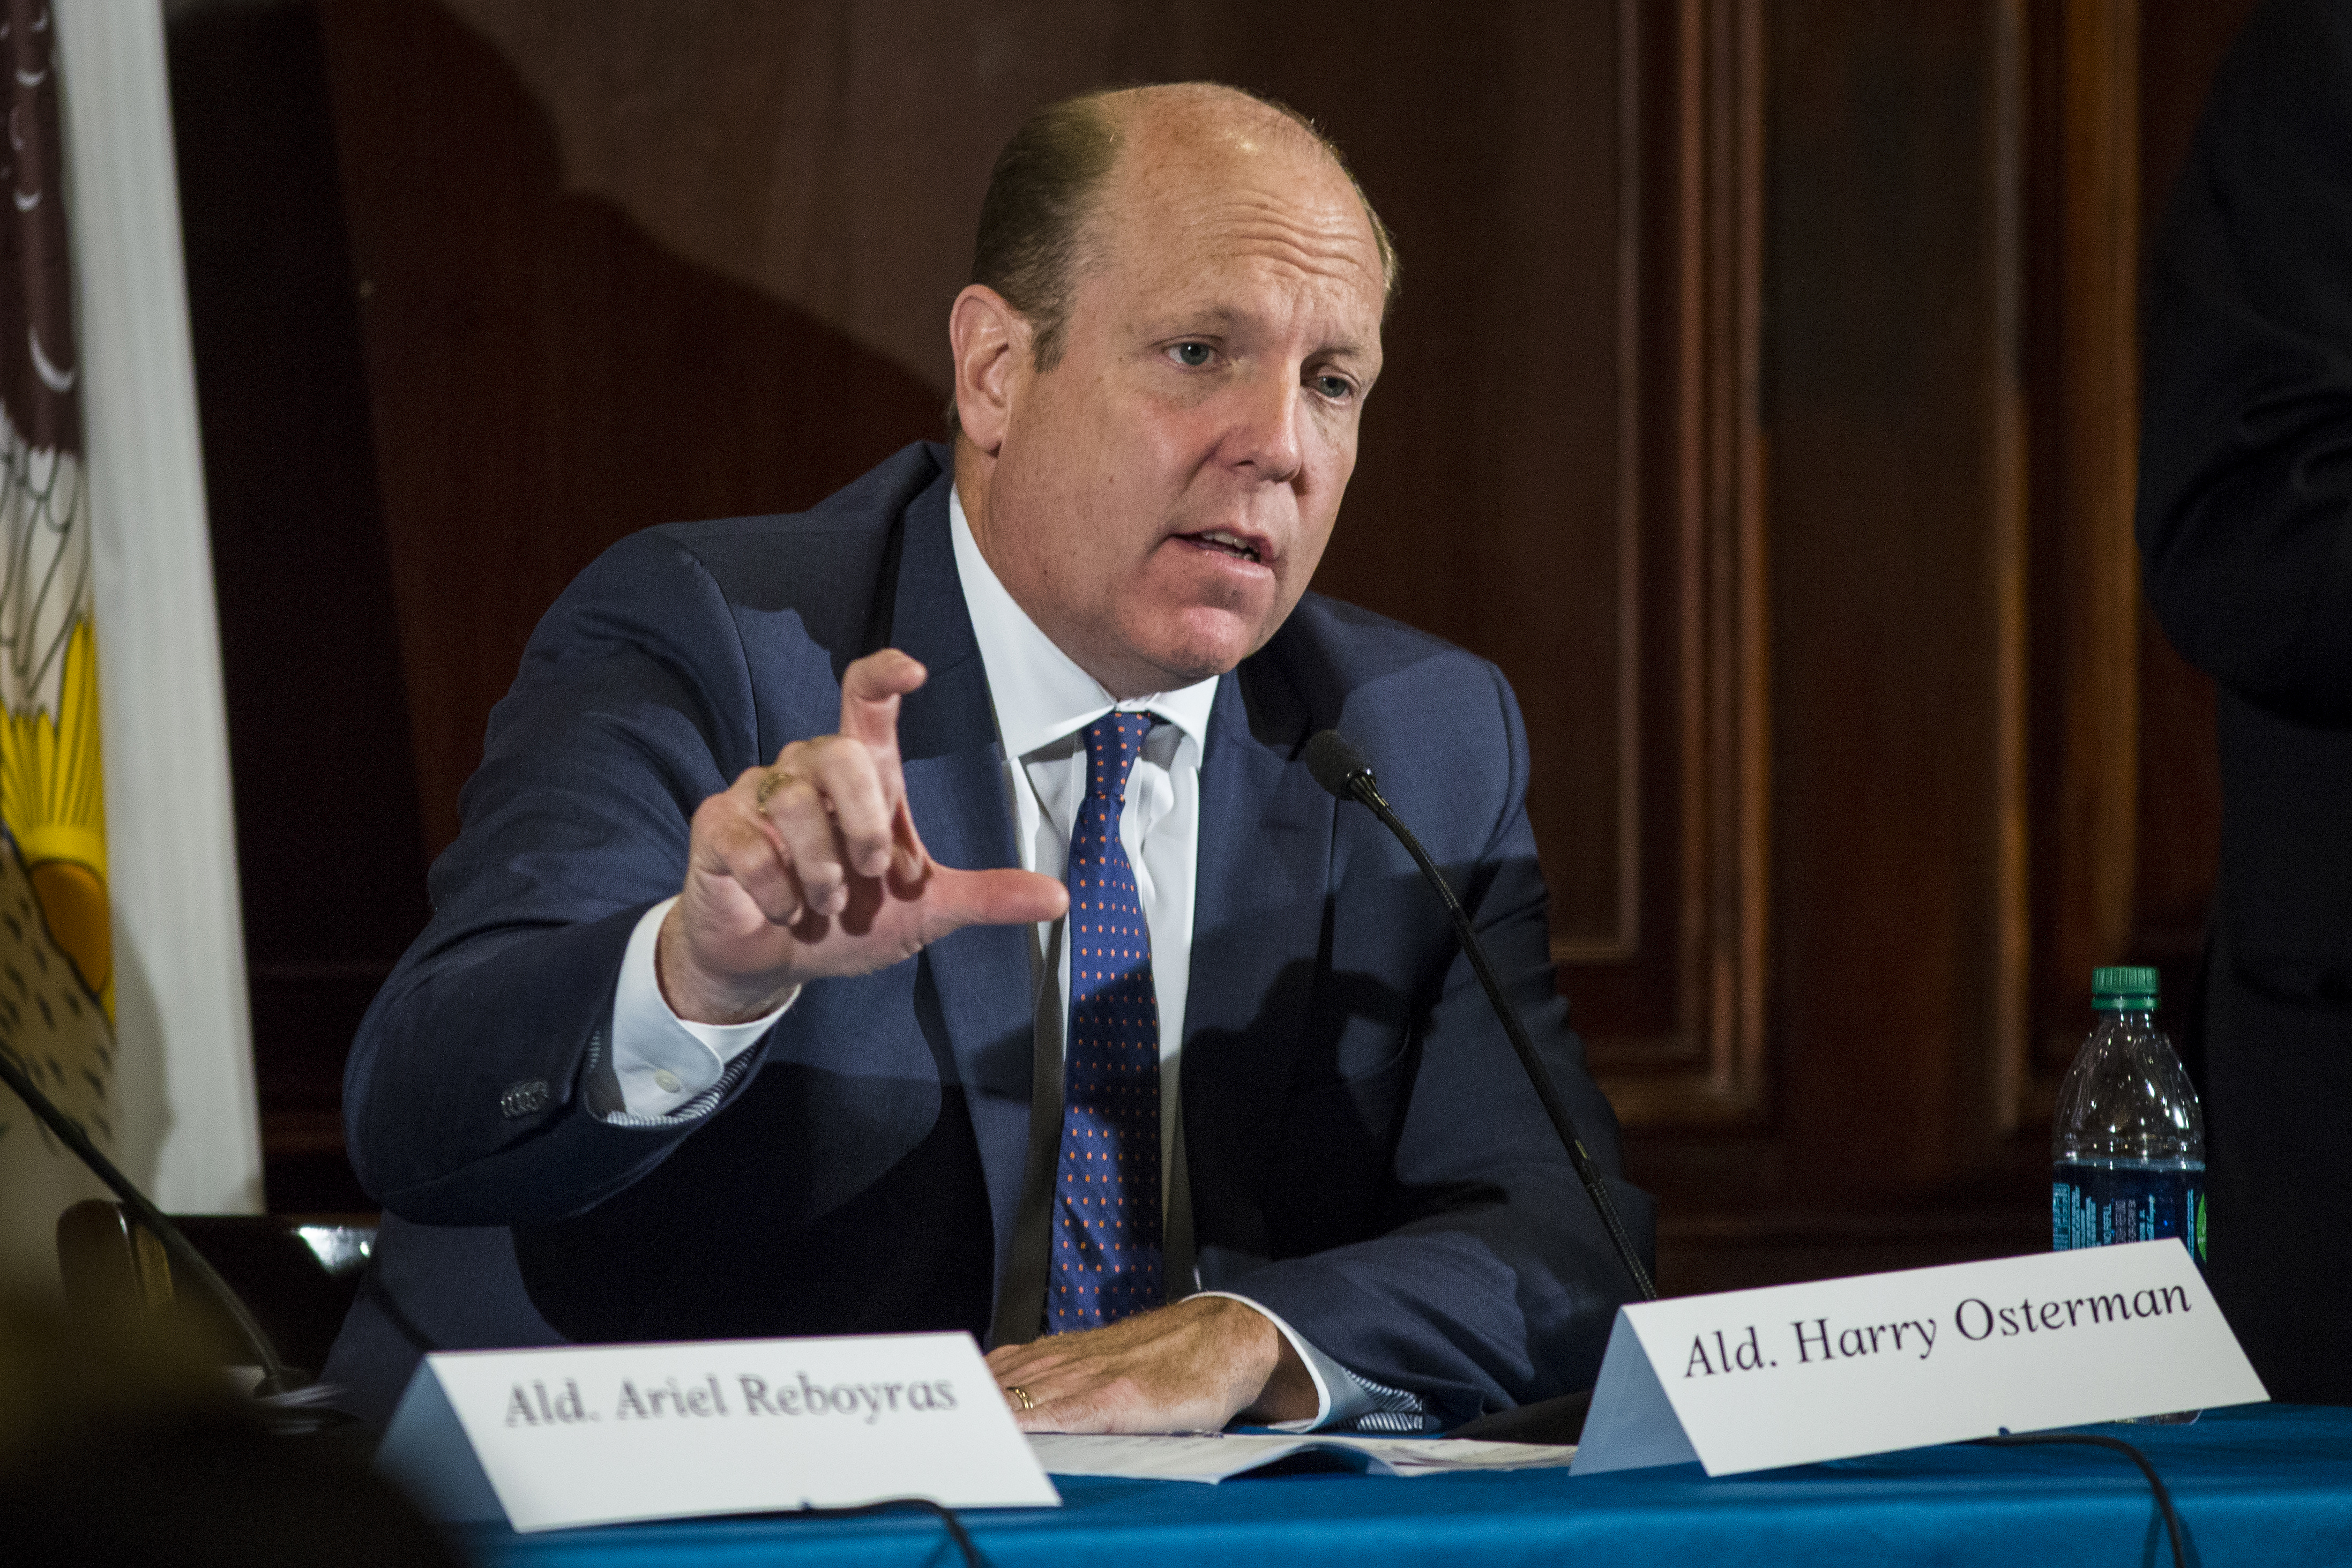 Housing Committee Chairman Harry Osterman (48th) at a City Club of Chicago luncheon in May 2018.